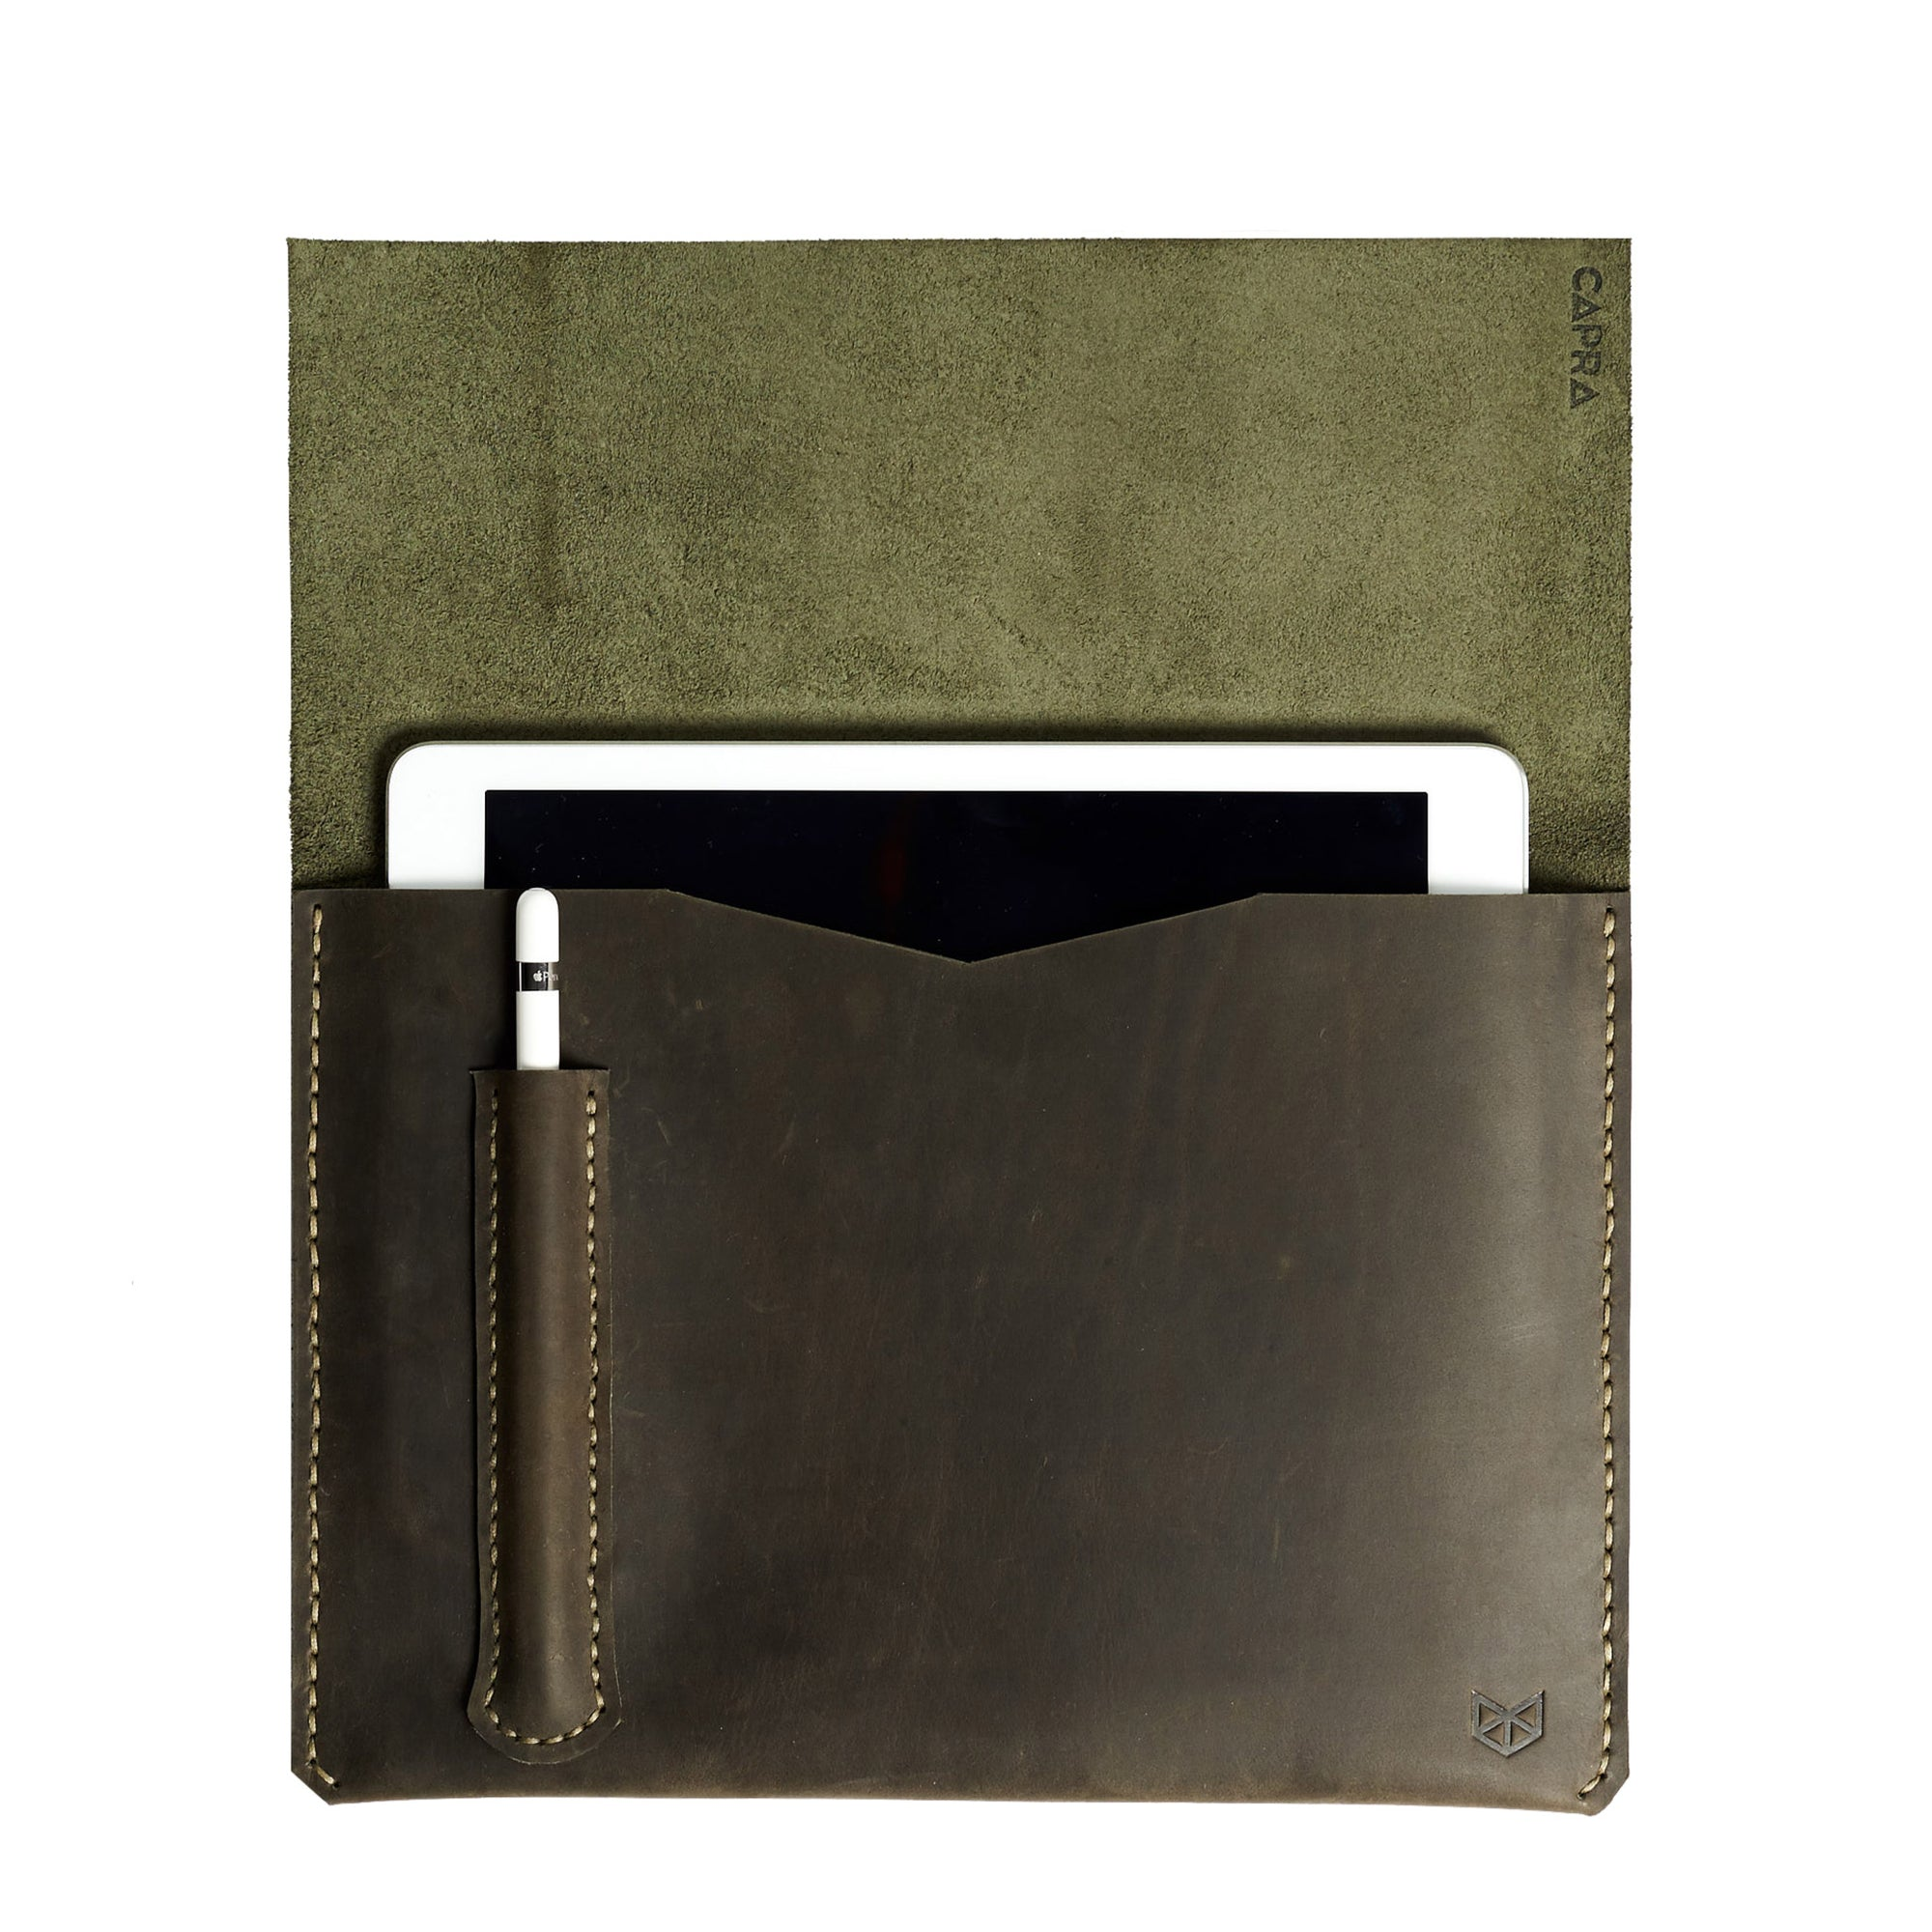 iPad Sleeve. iPad Leather Case Green With Apple Pencil Holder by Capra Leather